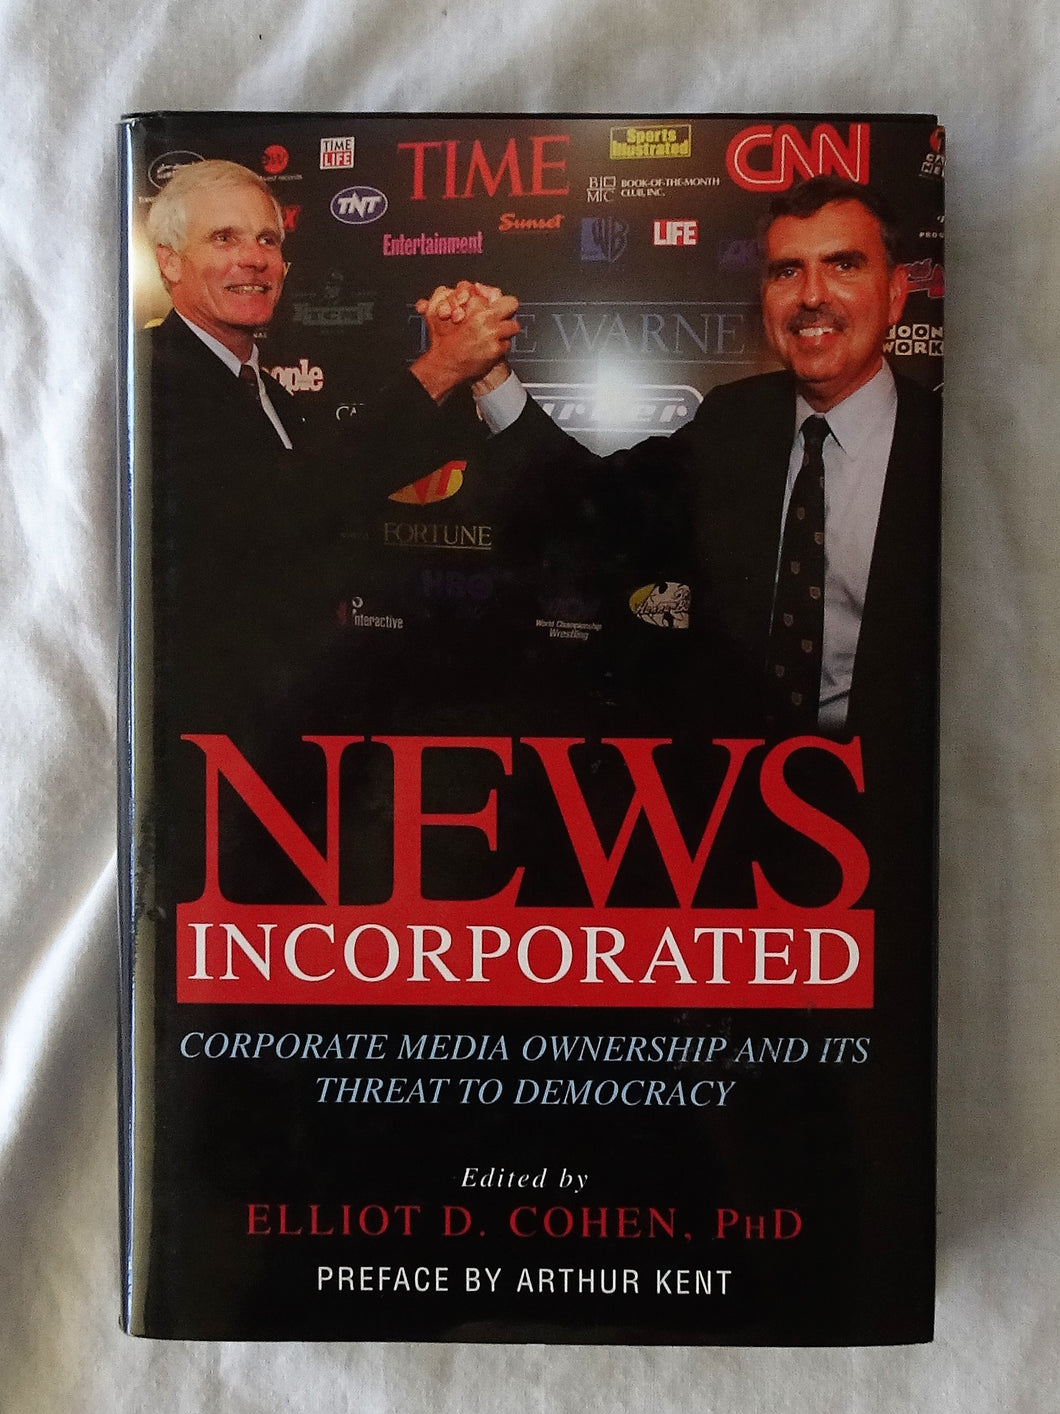 News Incorporated by Elliot D. Cohen